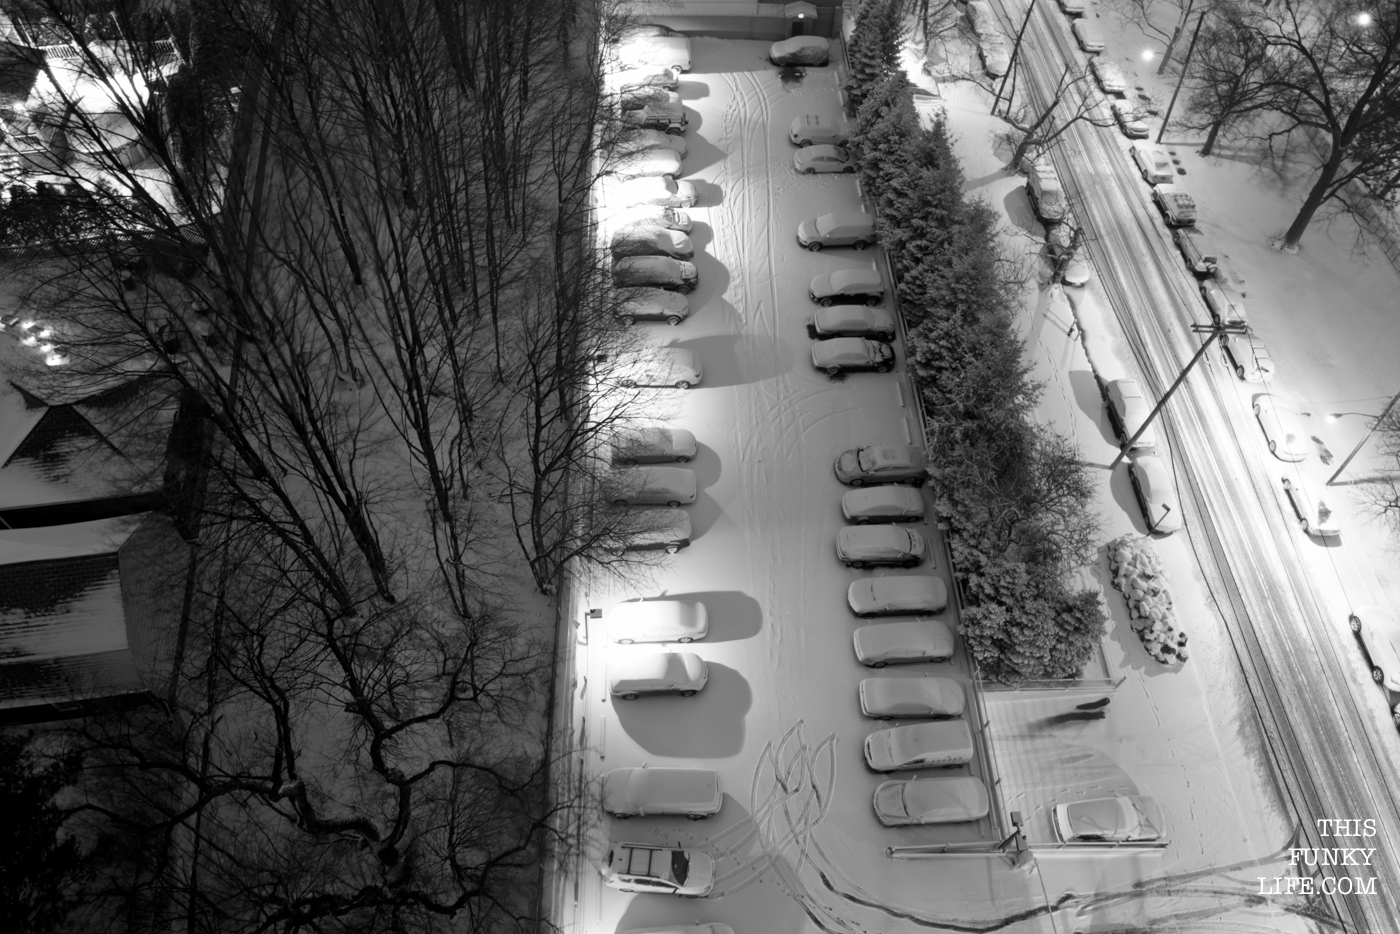 Cars covered in snow in a parking garage